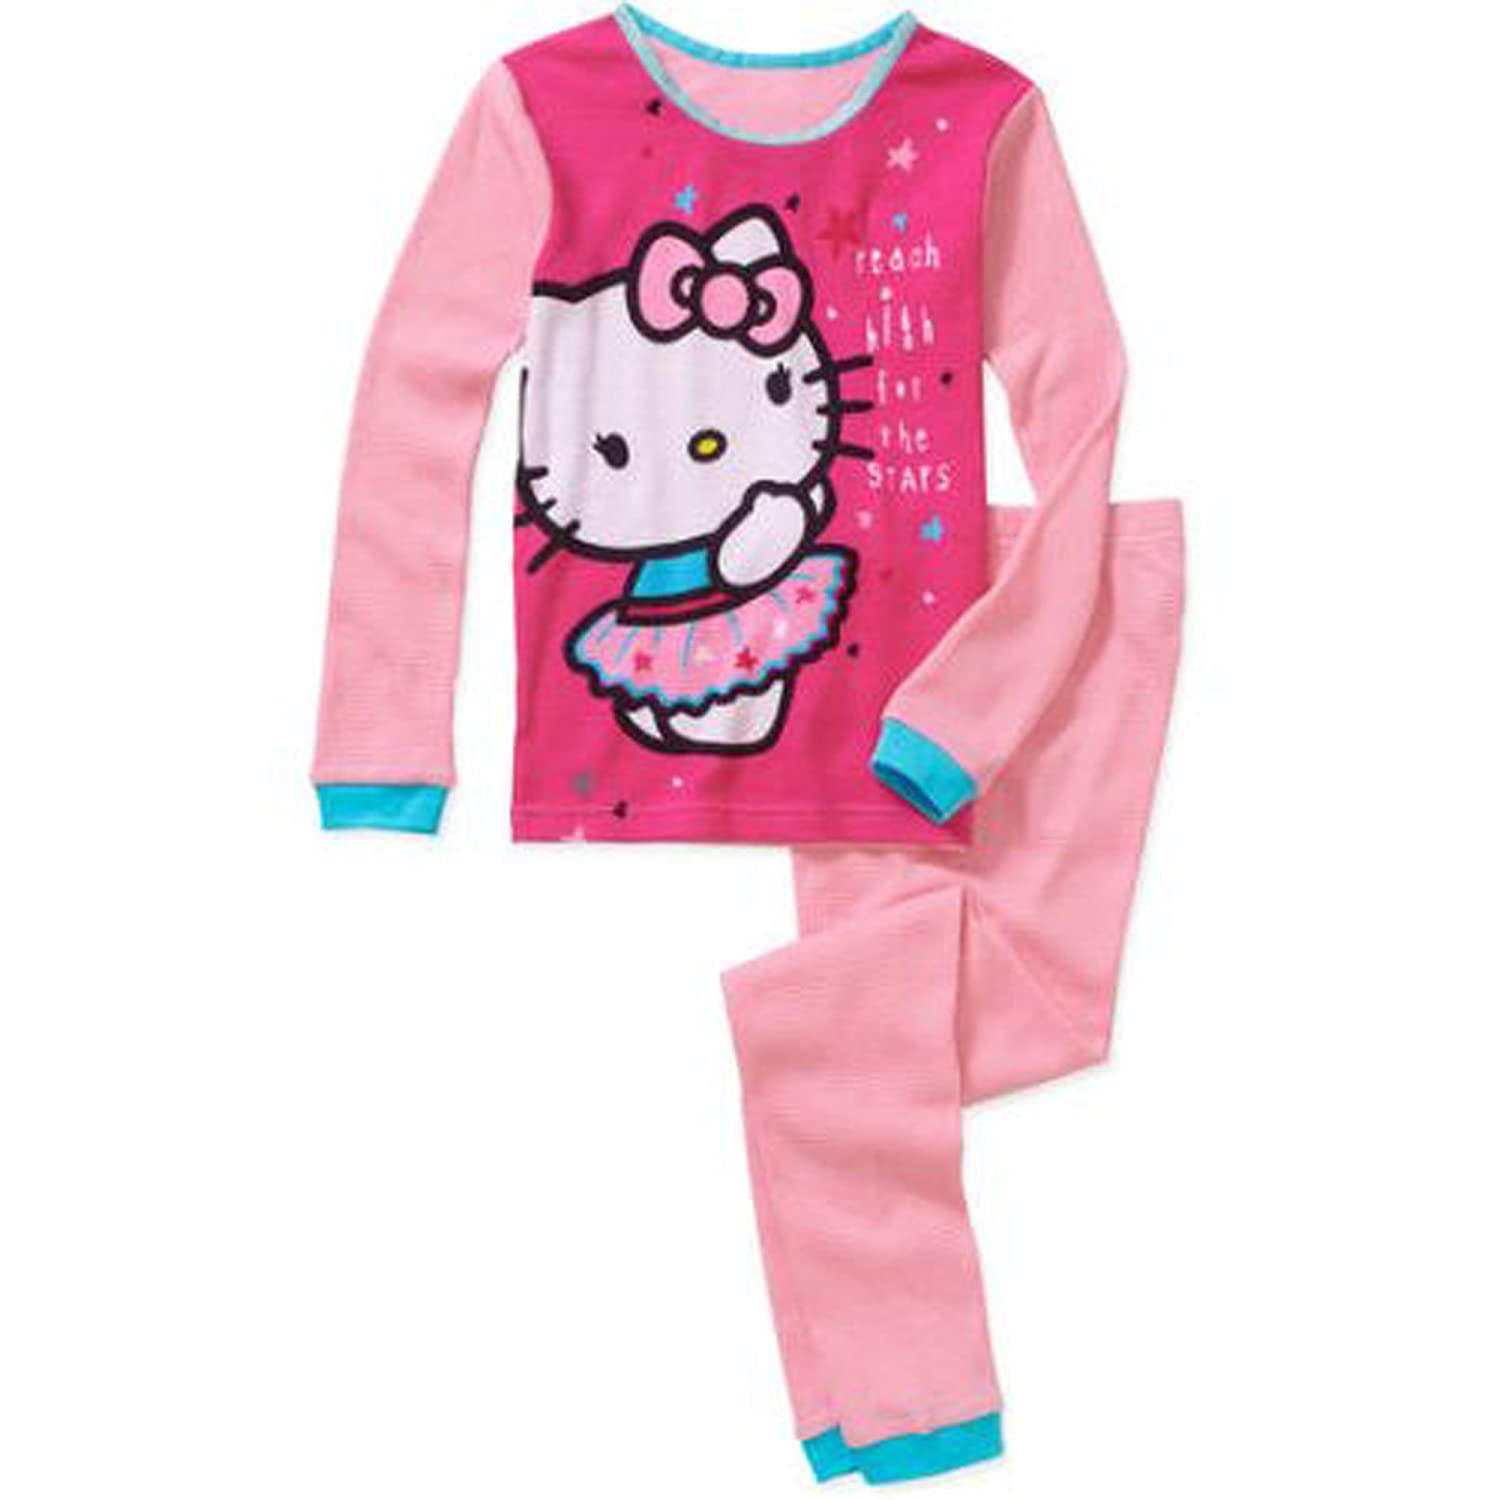 10c34894b Hello Kitty Girls Long Sleeve Cotton Thermal Underwear Pajamas Set ...